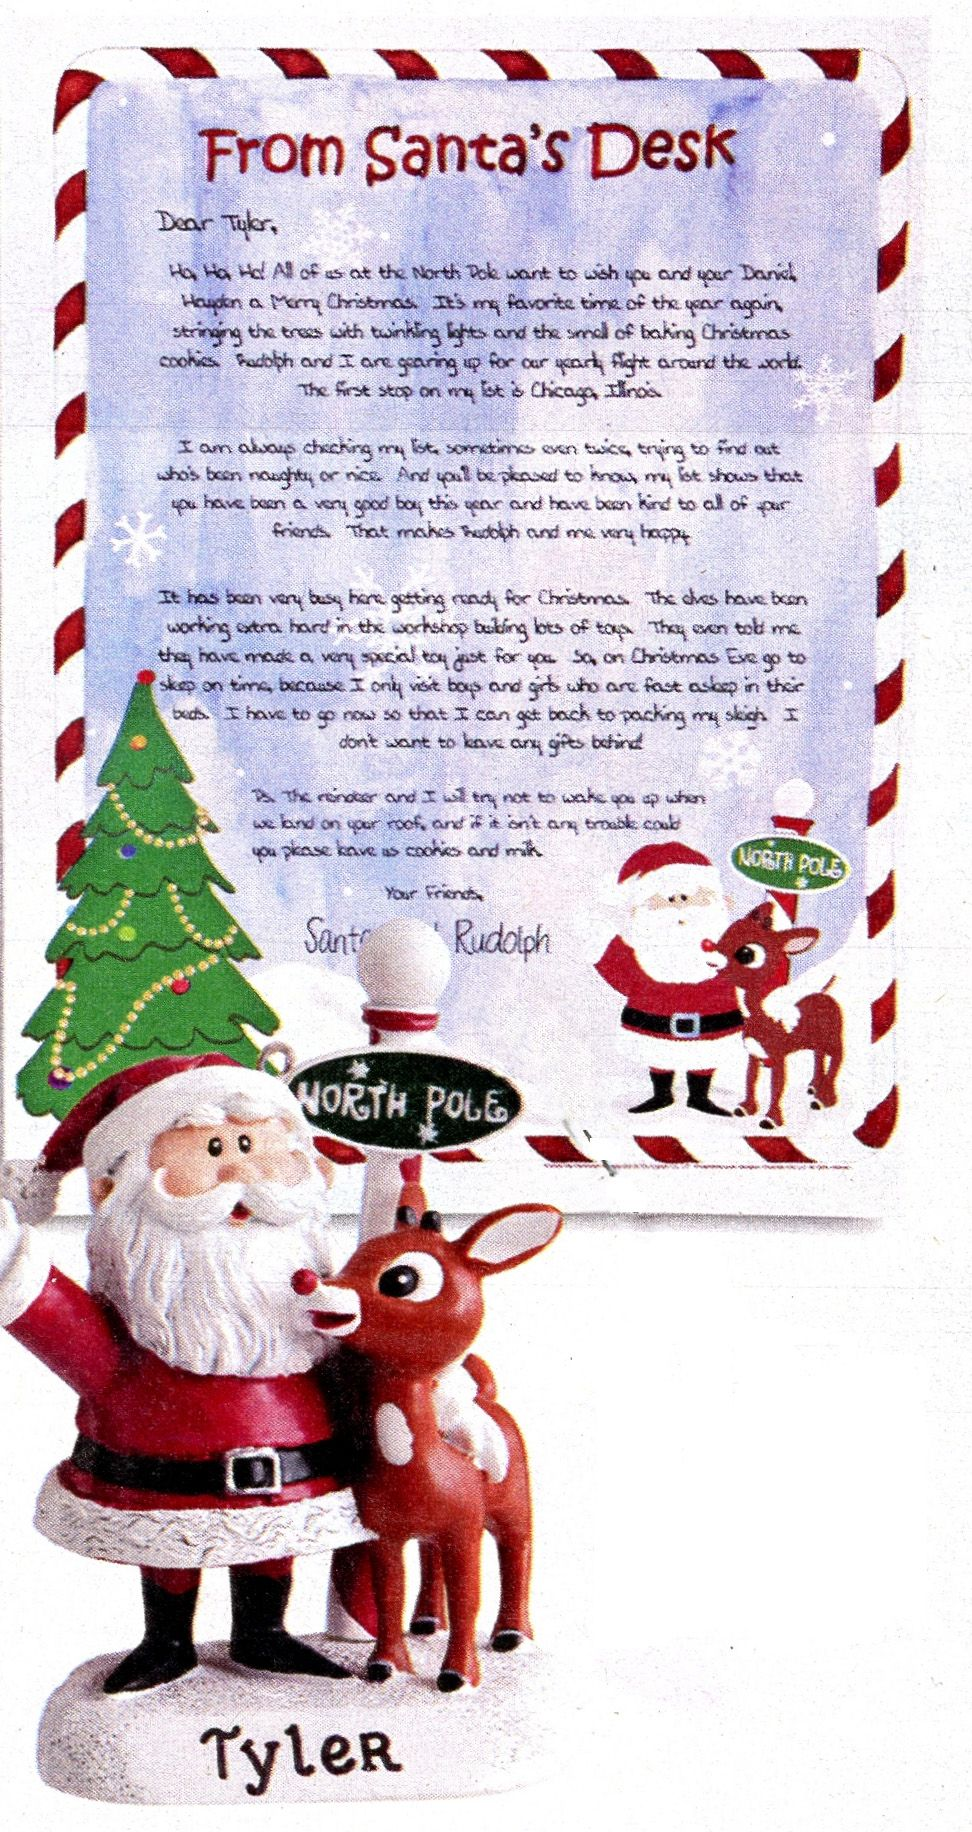 Personalized Ornament And Letter From Rudolph And Santa